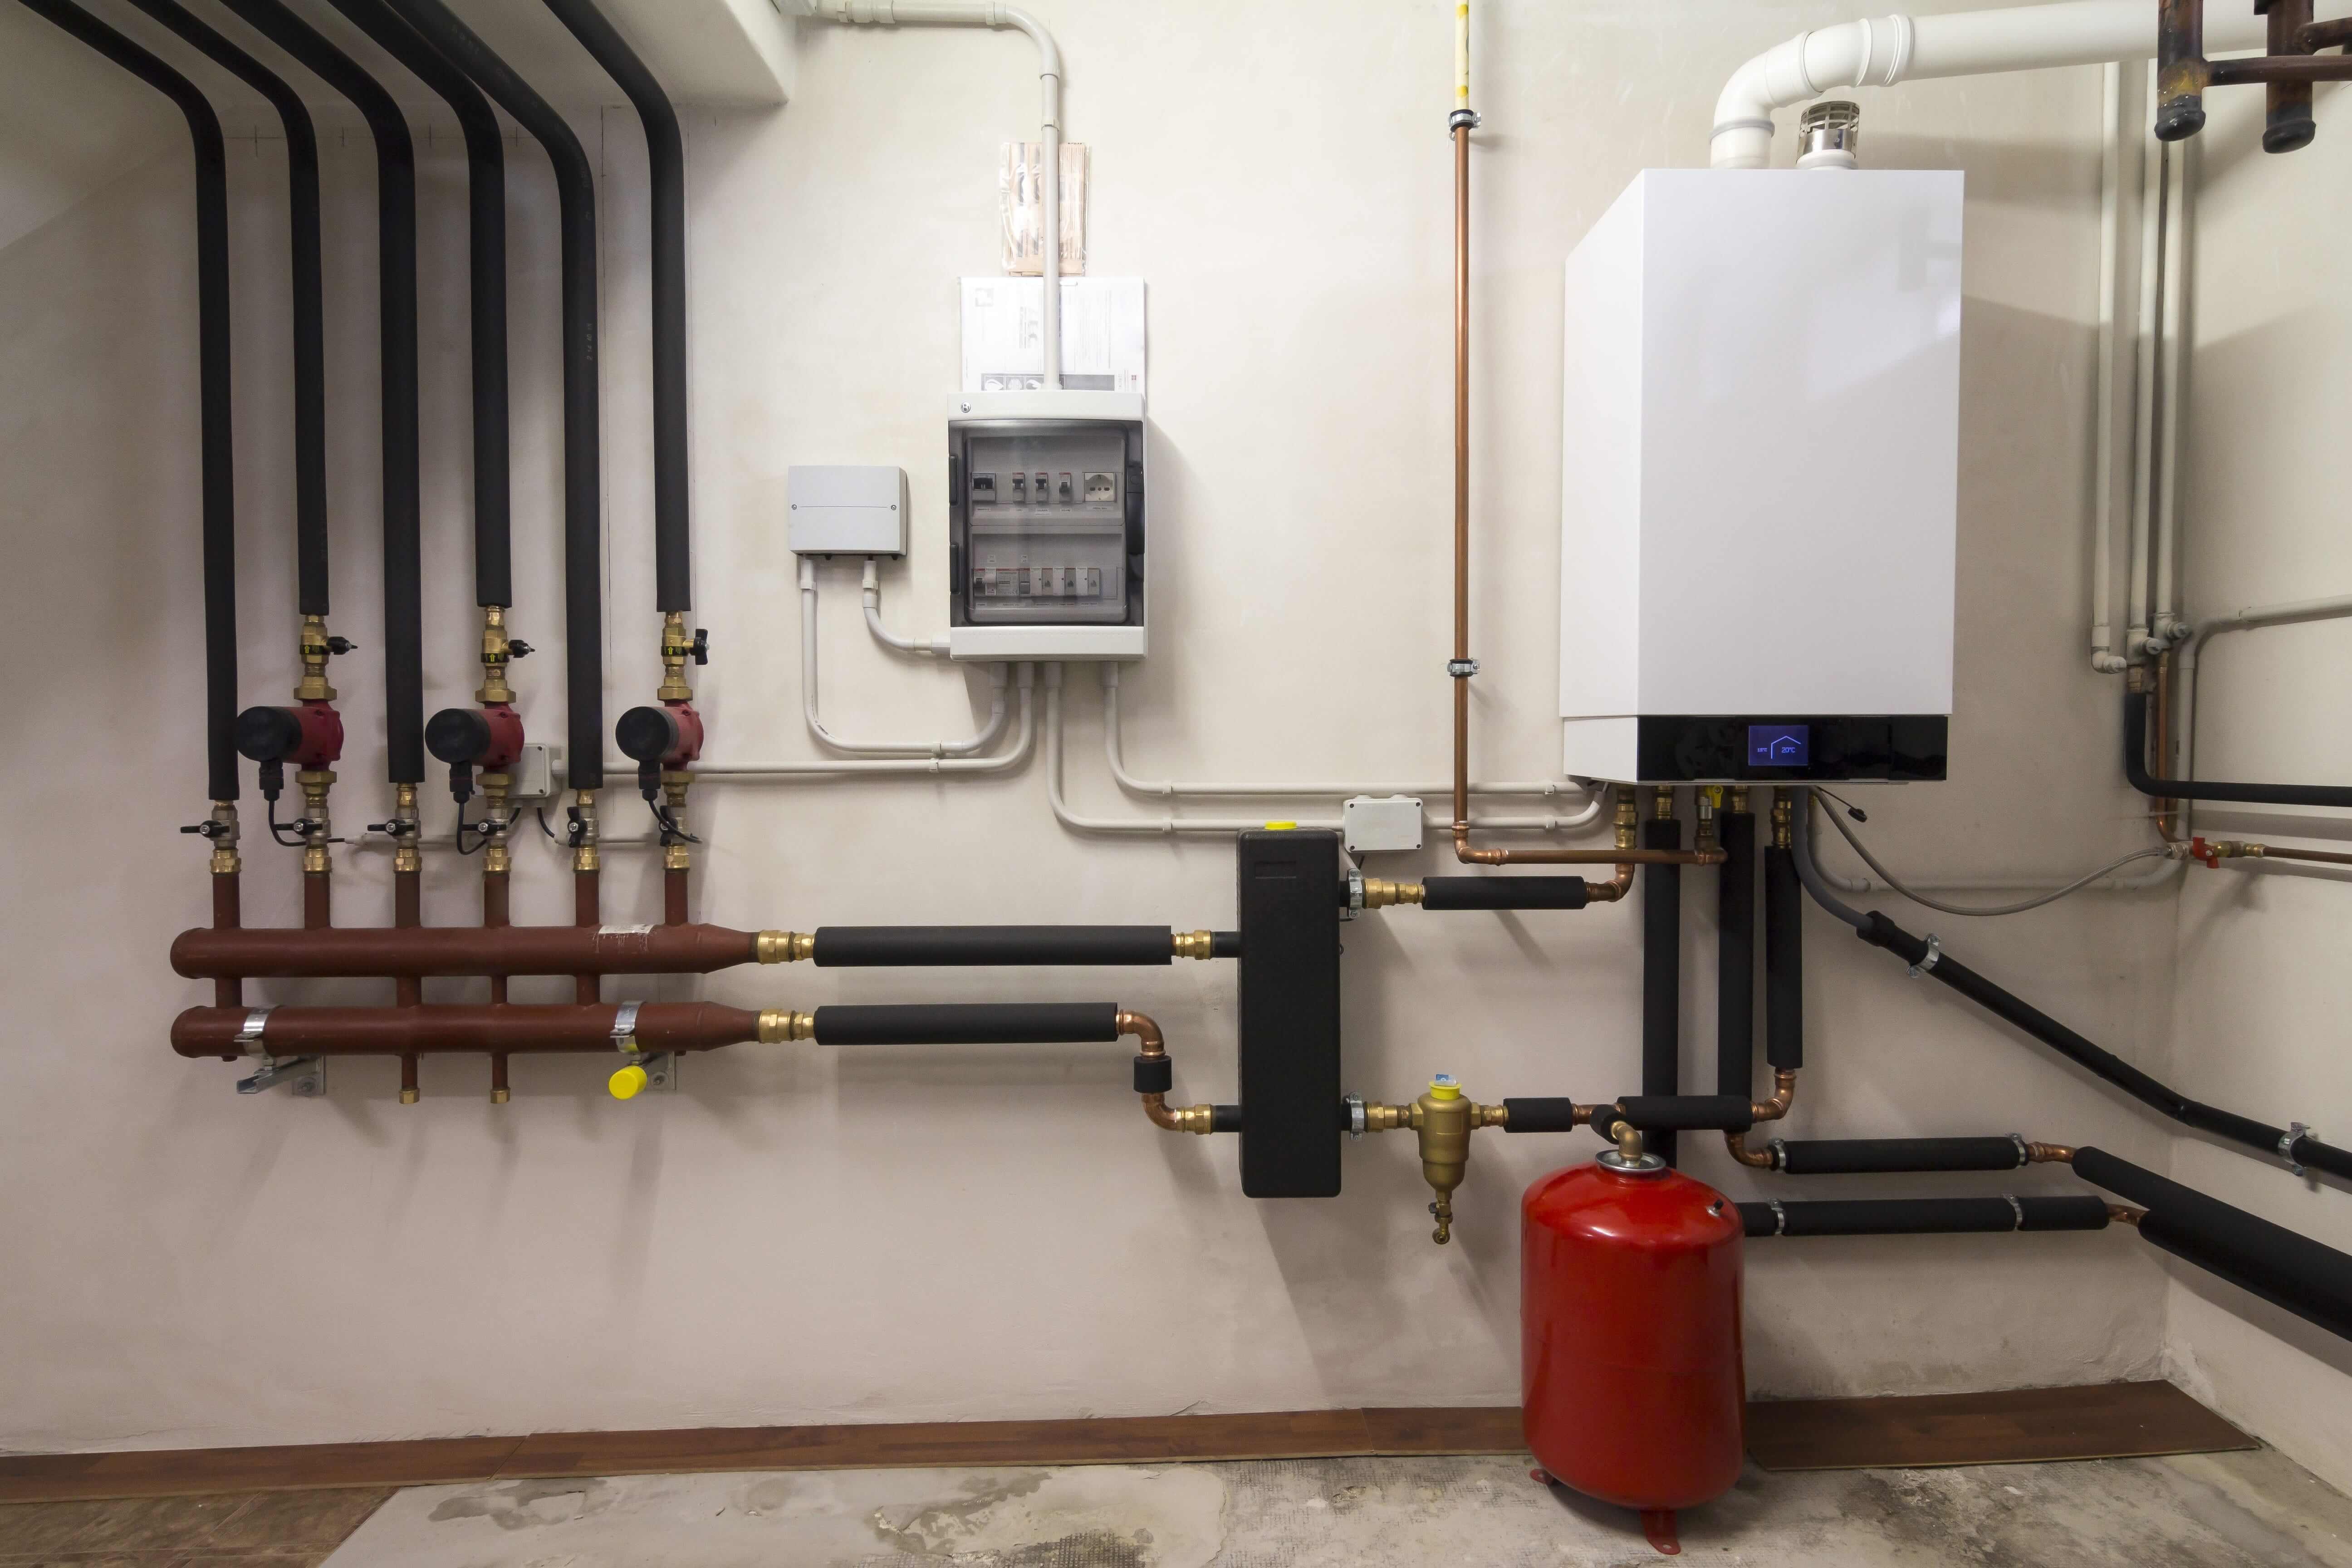 Top 5 Reasons to Convert Heating Systems From Oil to Natural Gas